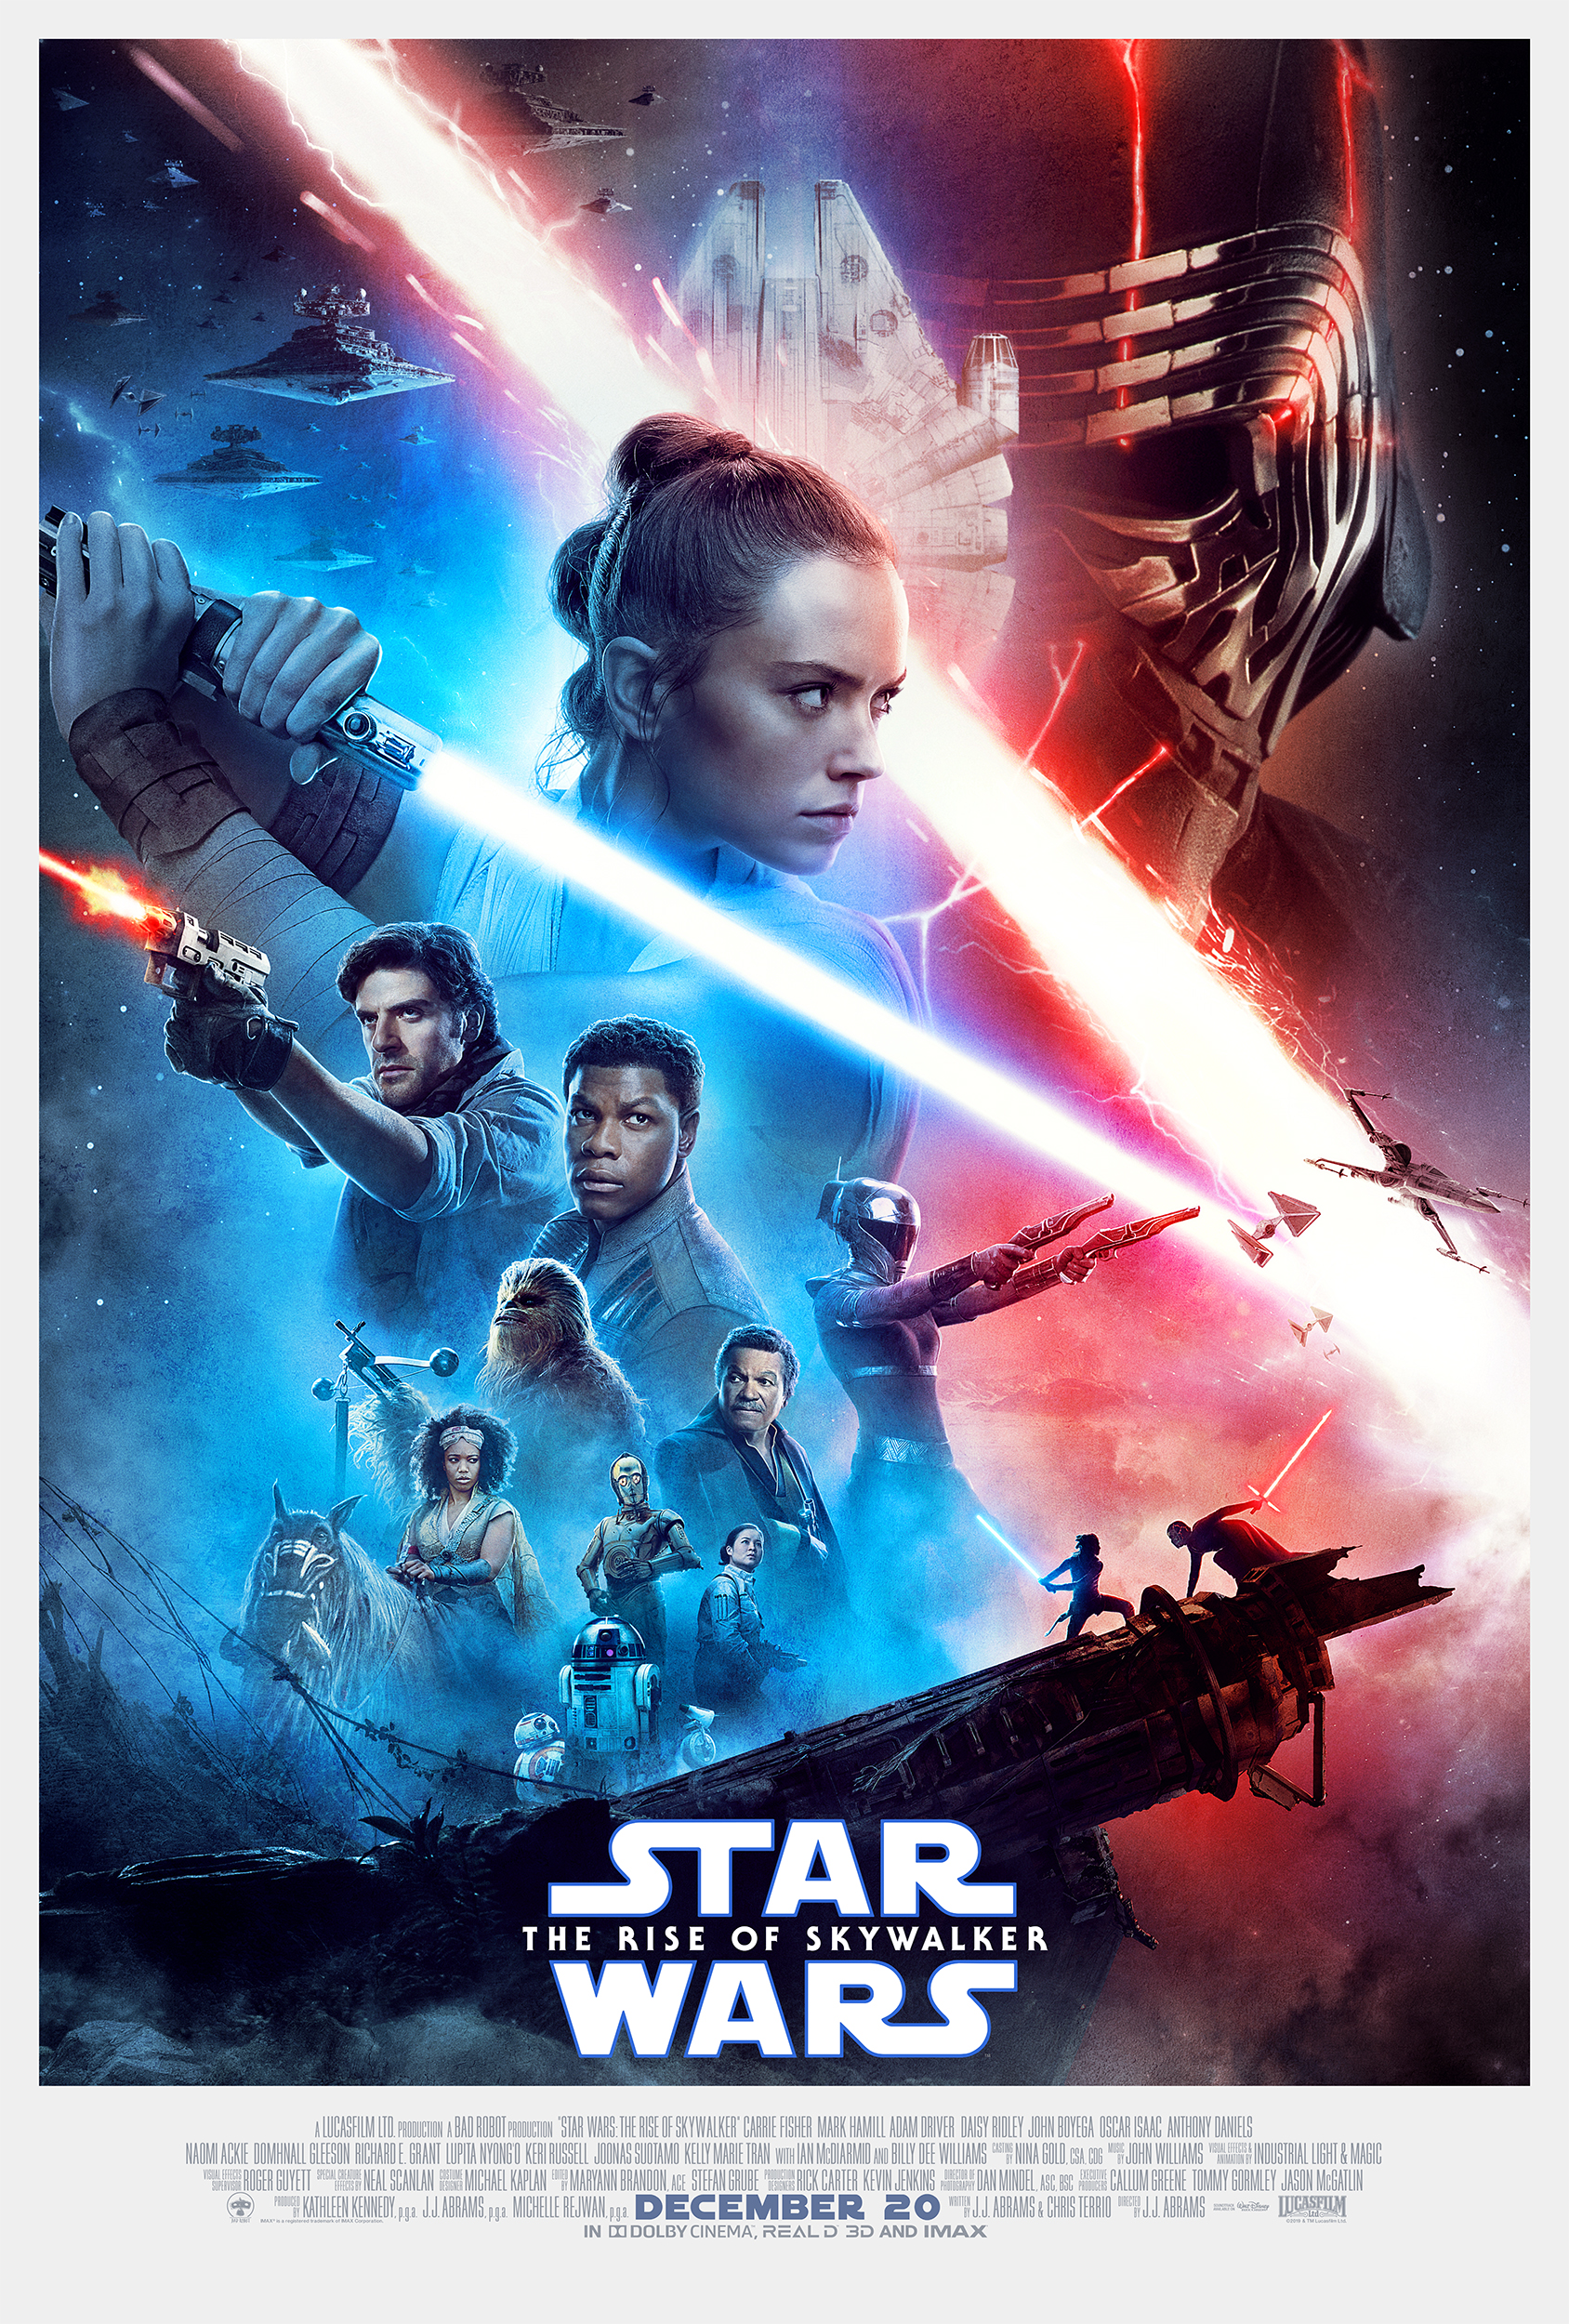 Star Wars: The Rise Of Skywalker Final Trailer, Poster & Tickets Now On Sale